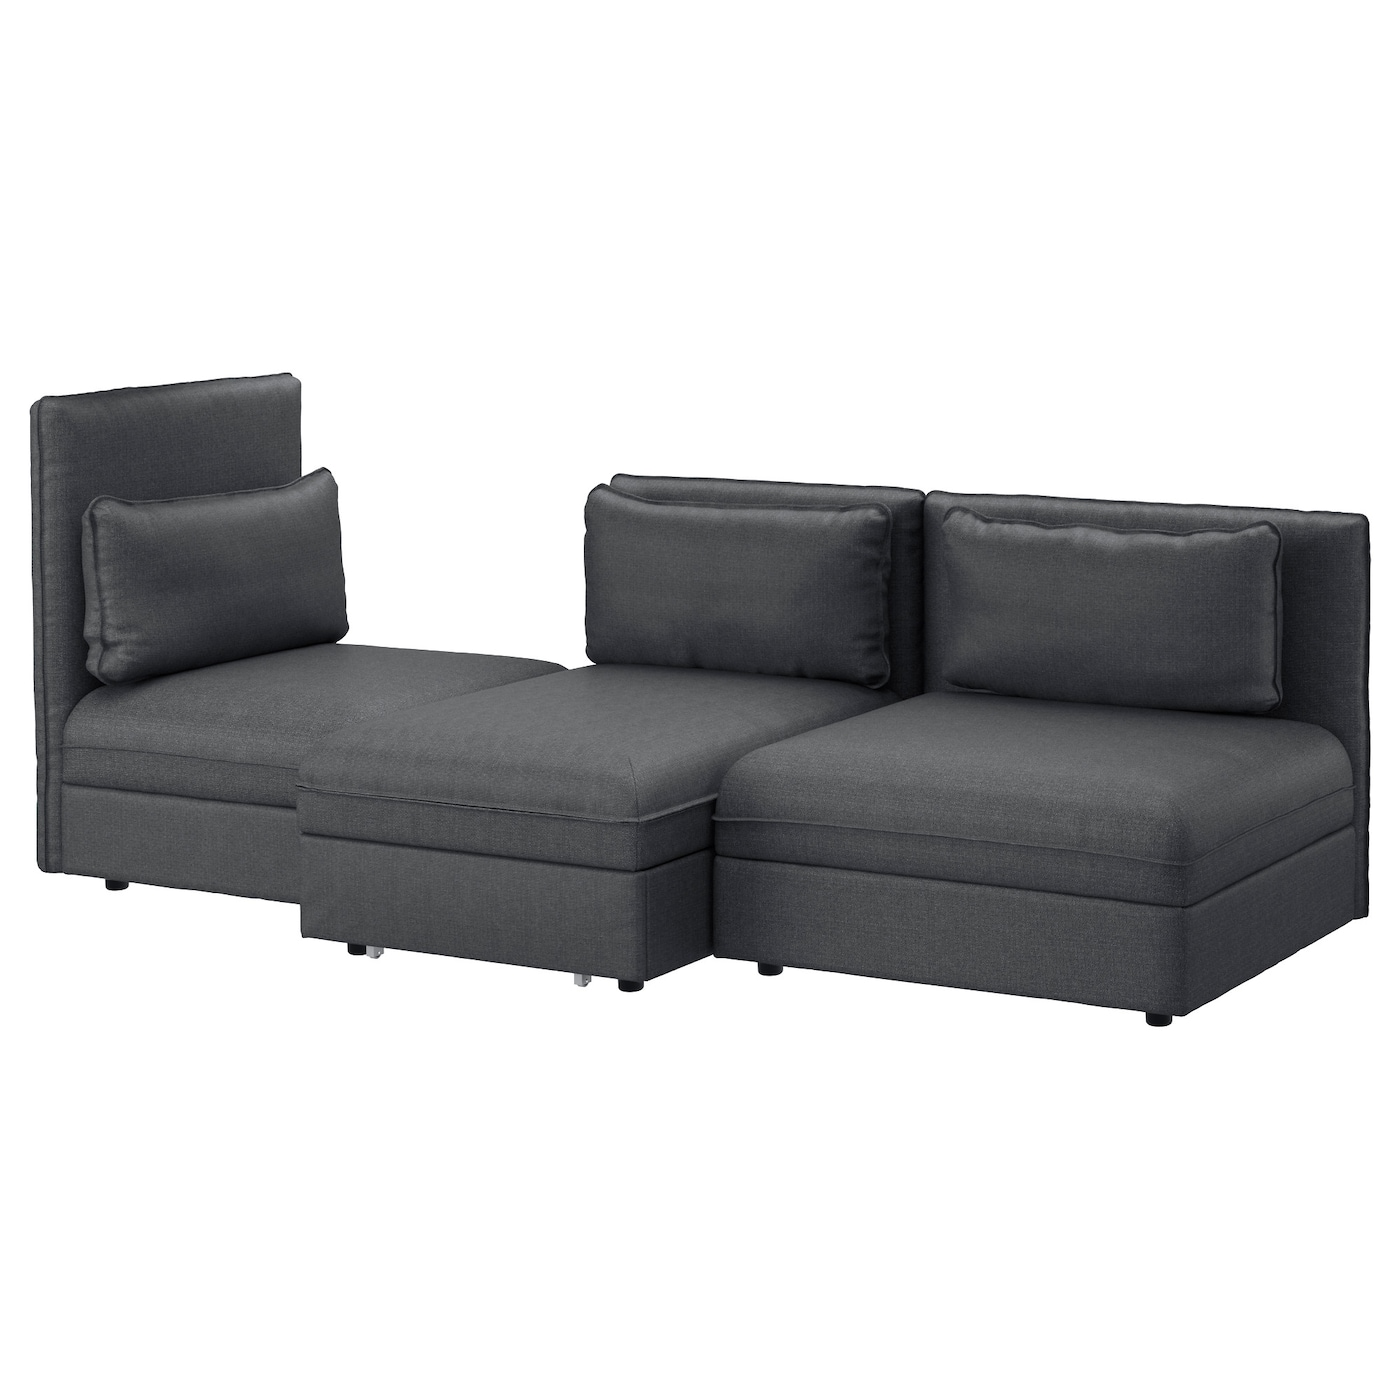 Sofas armchairs ikea for Sofa 1 80 breit